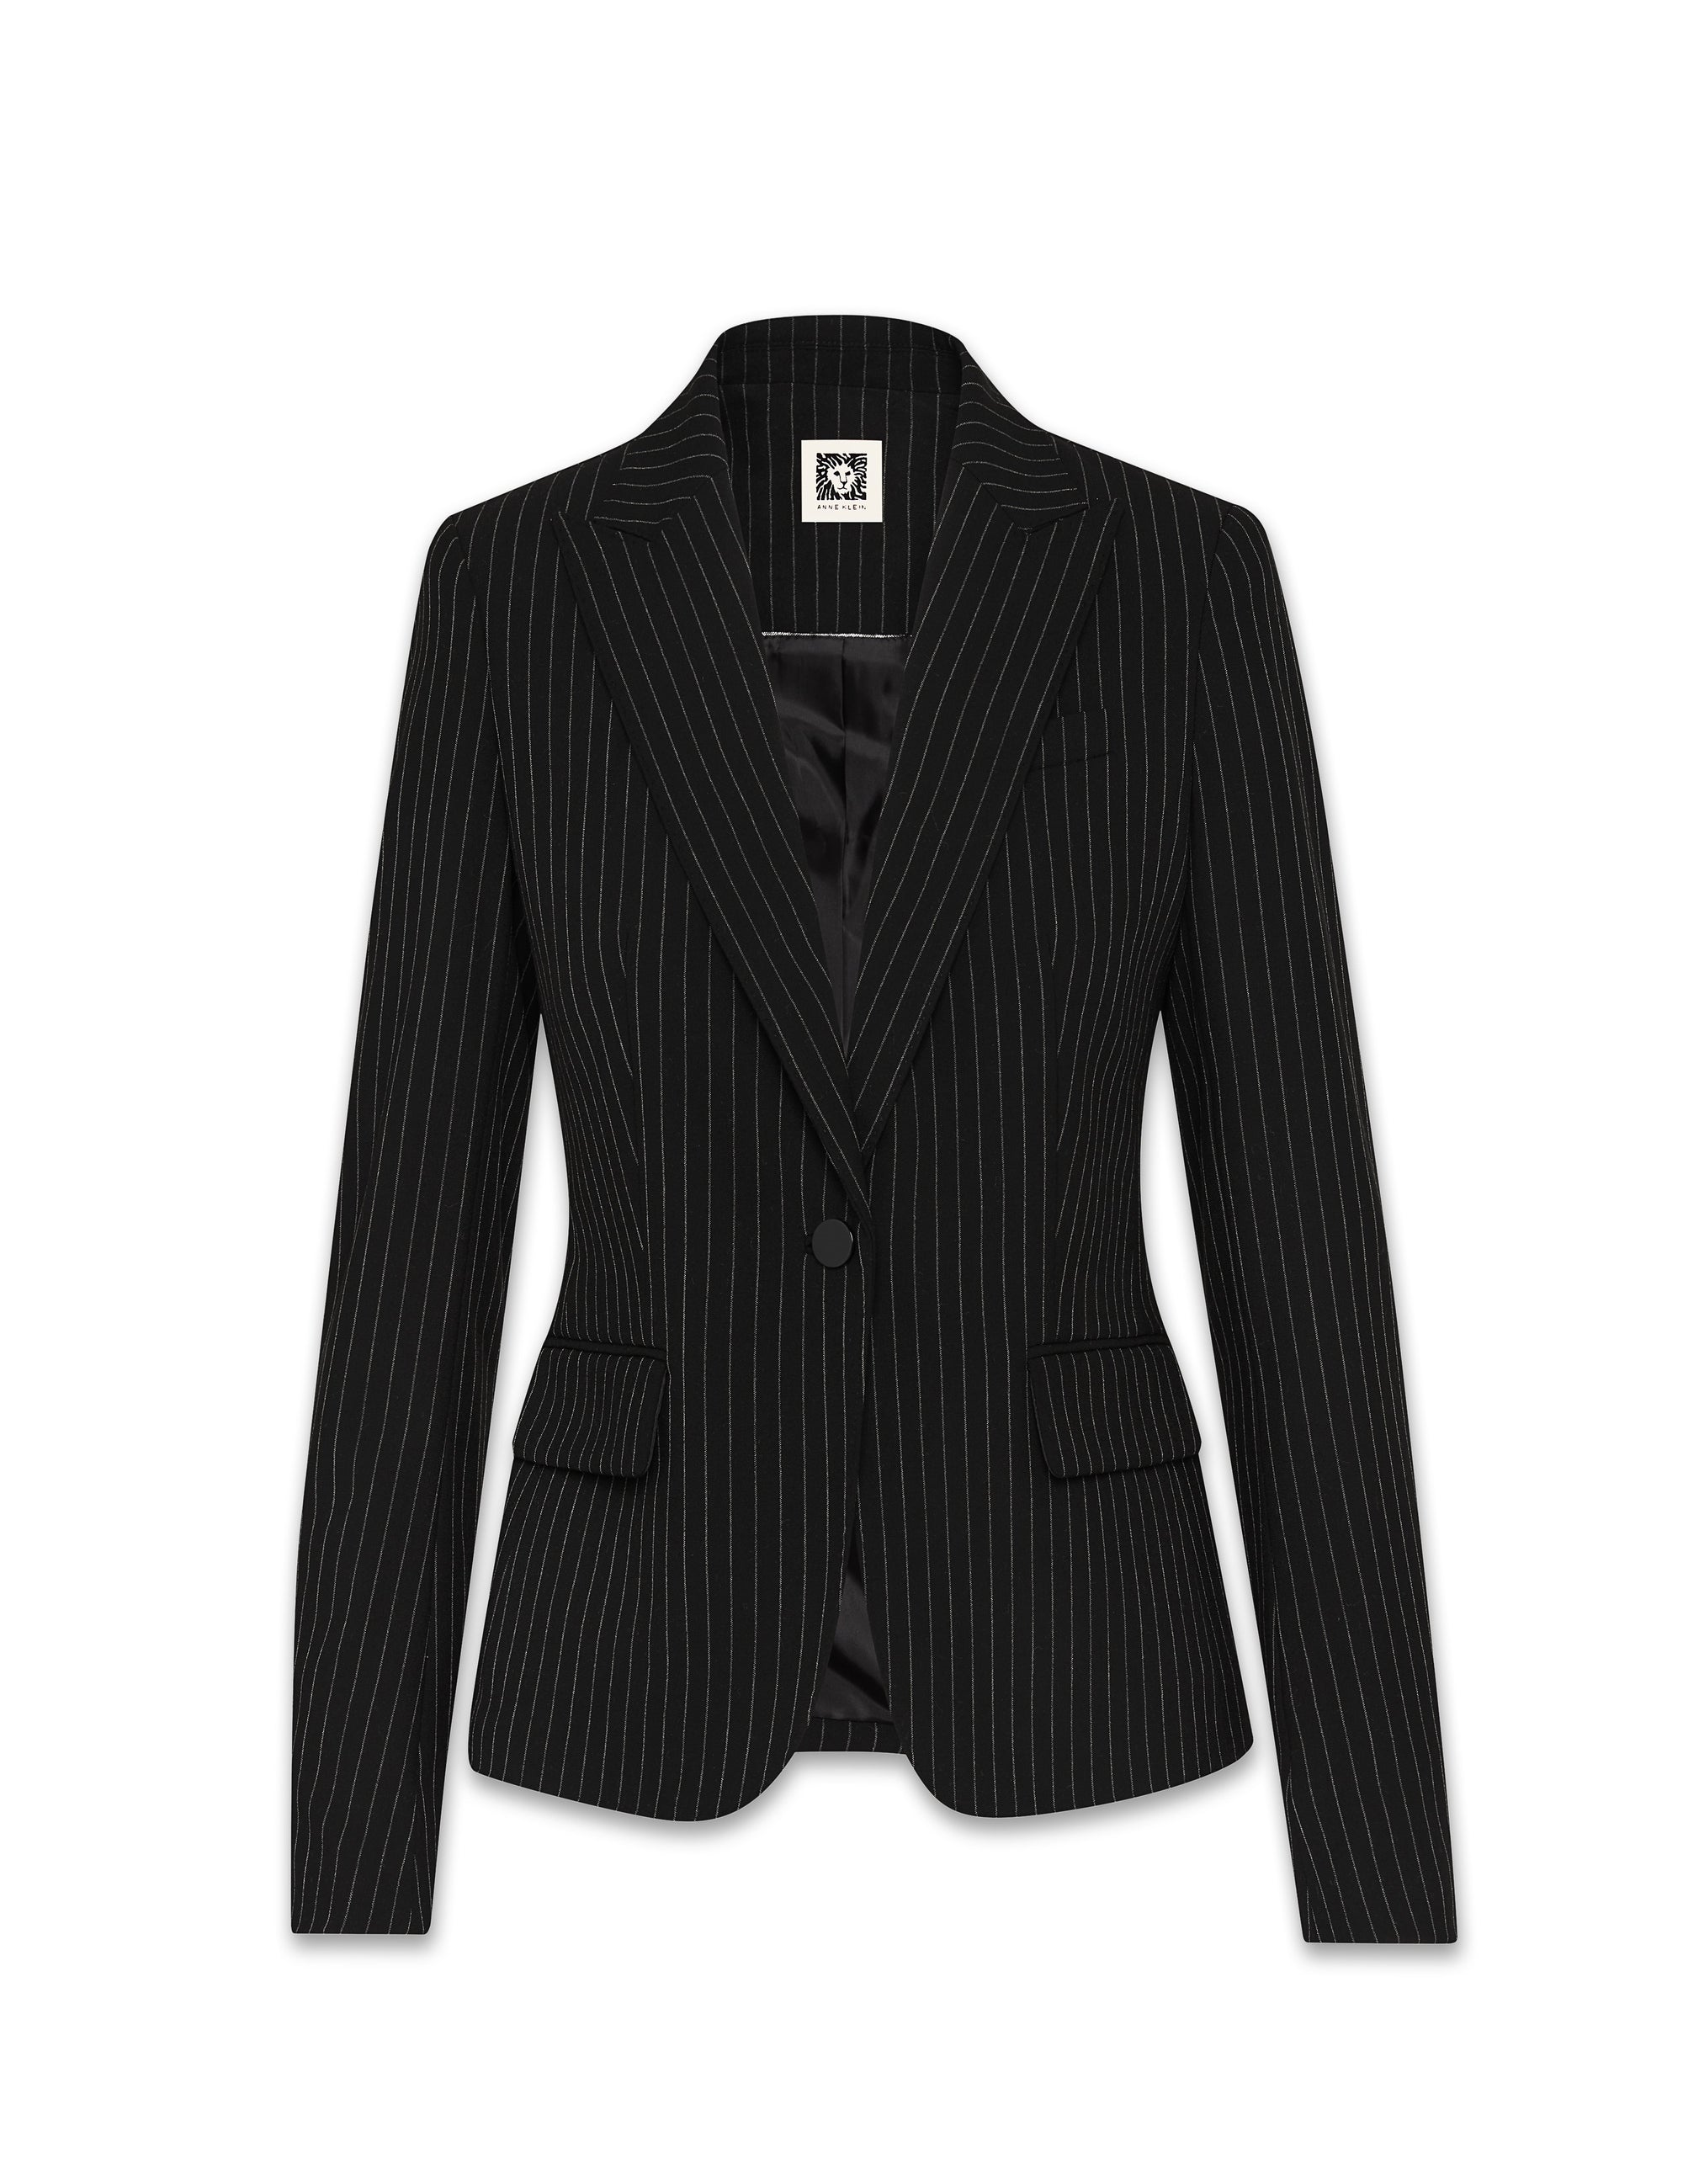 Anne Klein Black/White Pinstripe Peak Lapel Jacket